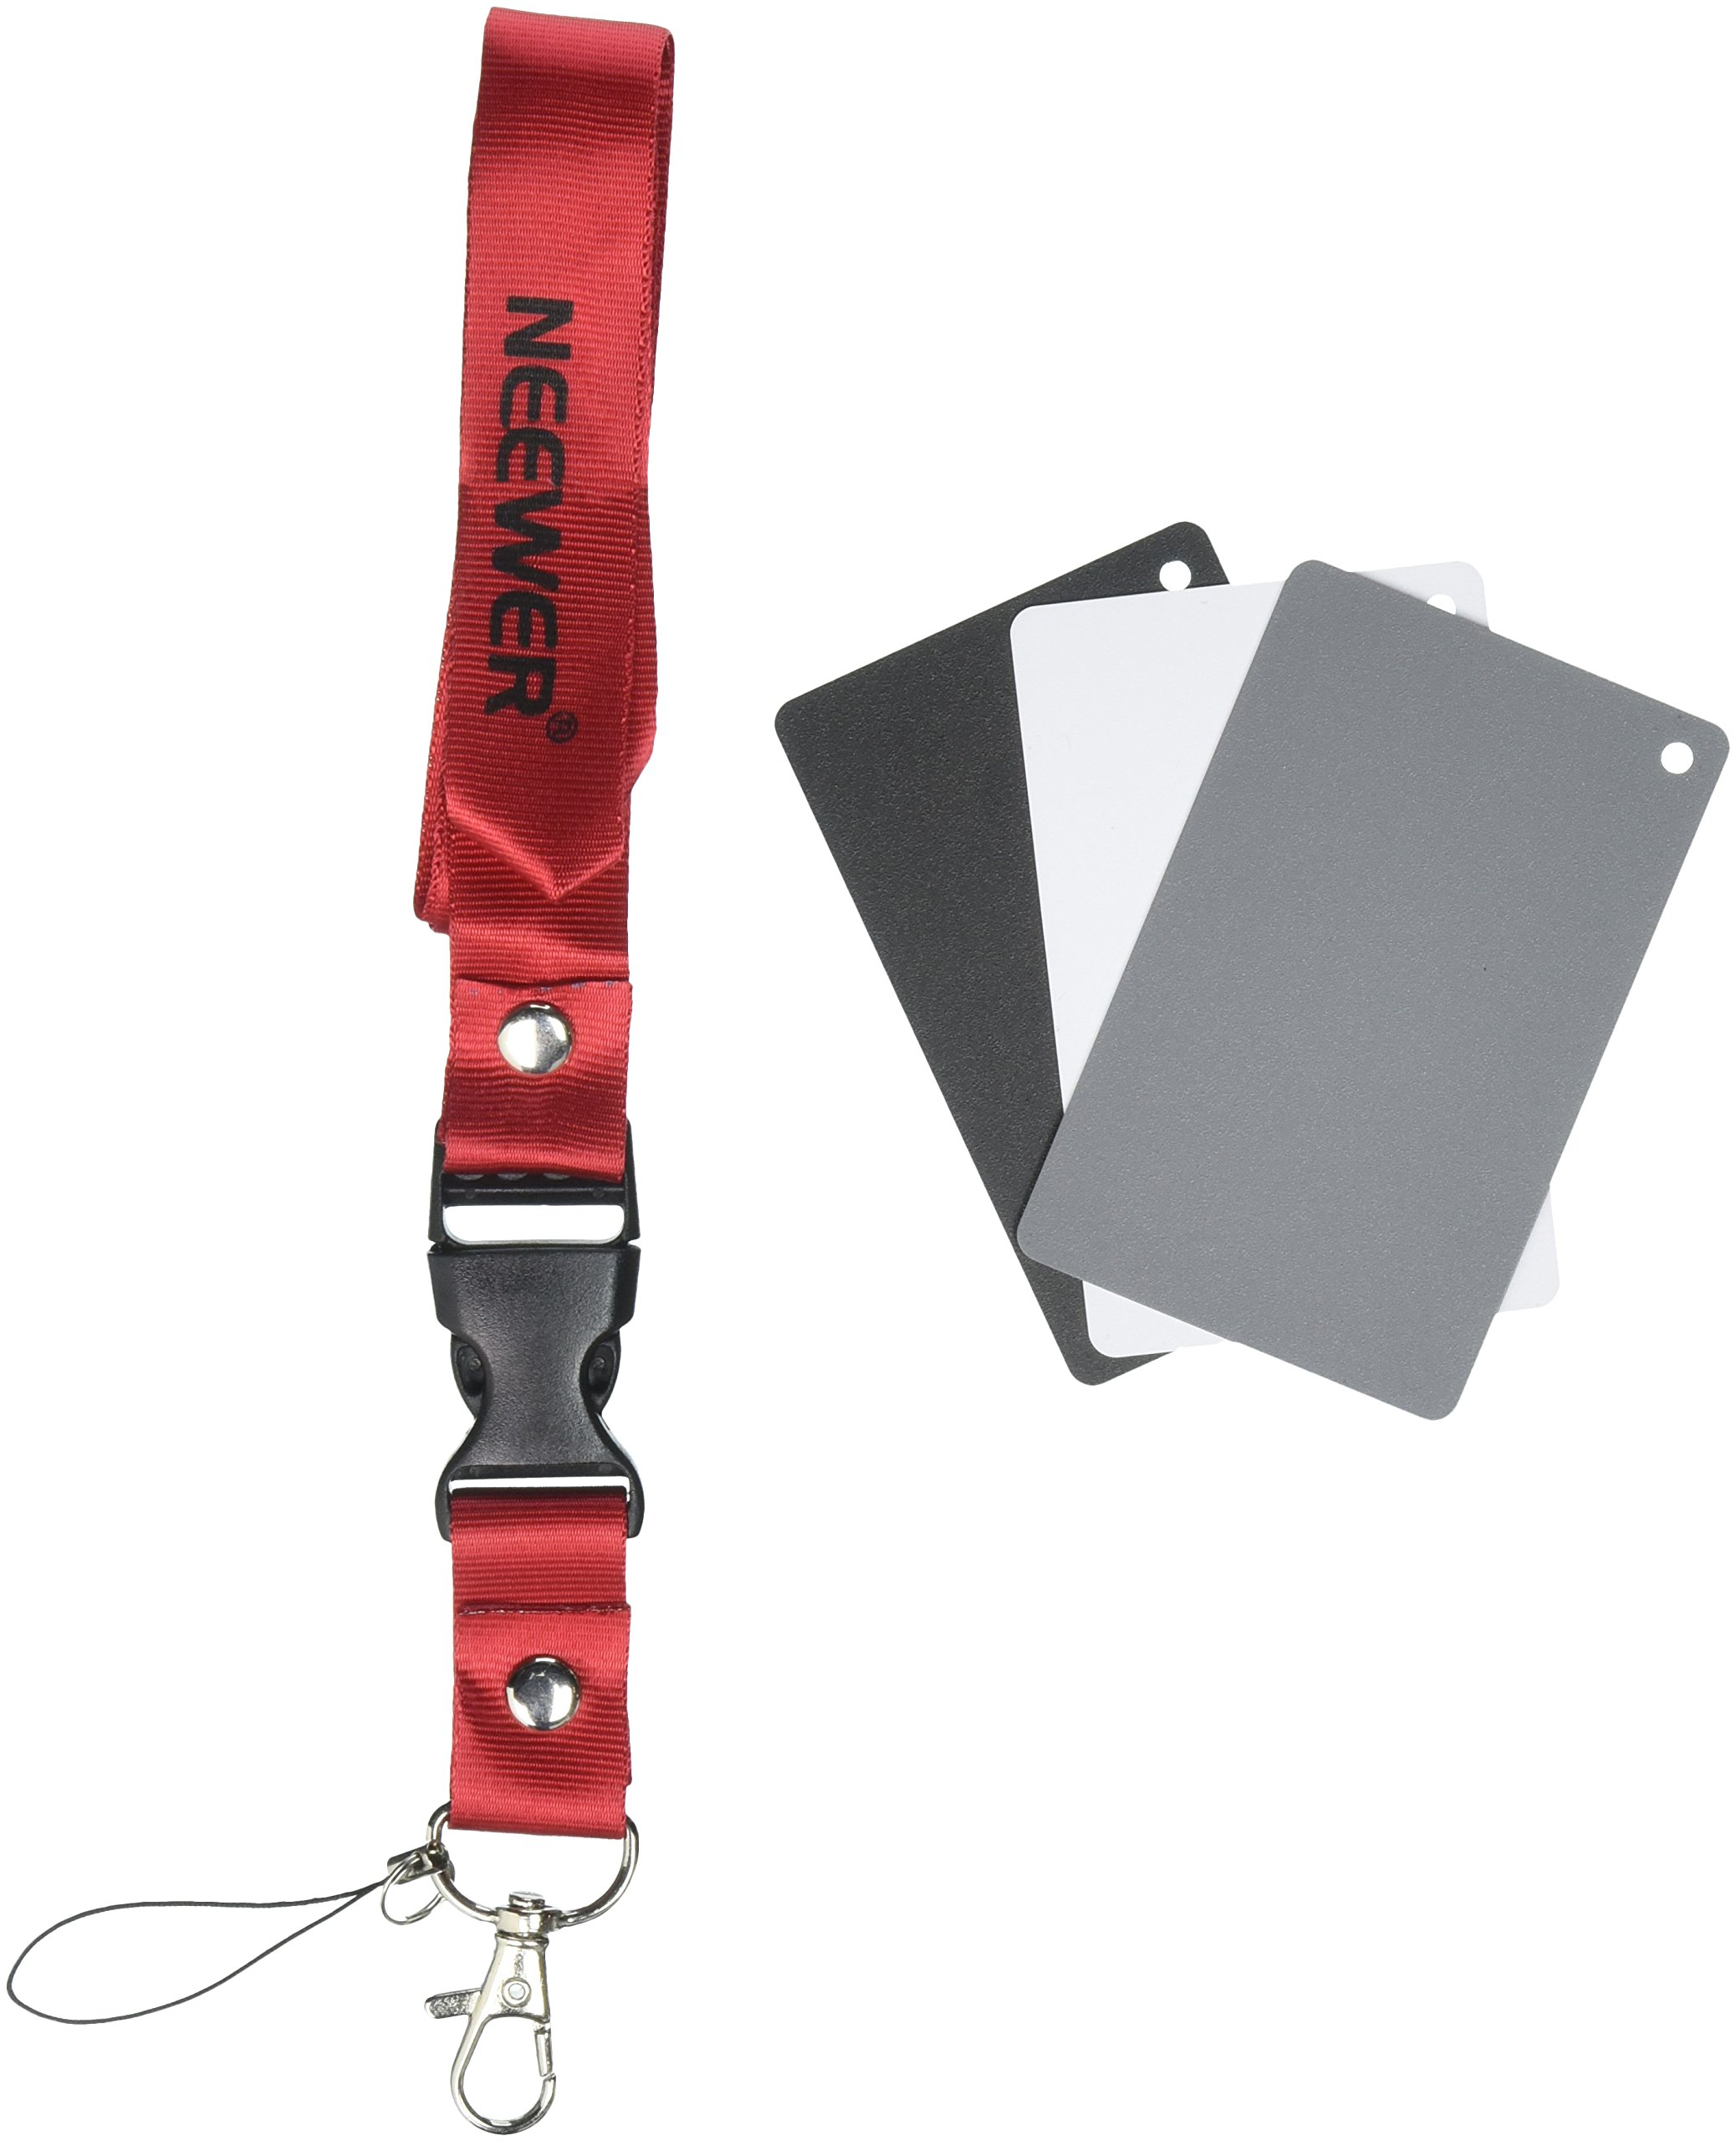 "Neewer Digital Grey Card Set - 2"" x 3"" White Balance Card 18% Gray Card for Digital and Film Photography with Premium Lanyard (2"" x 3"")"